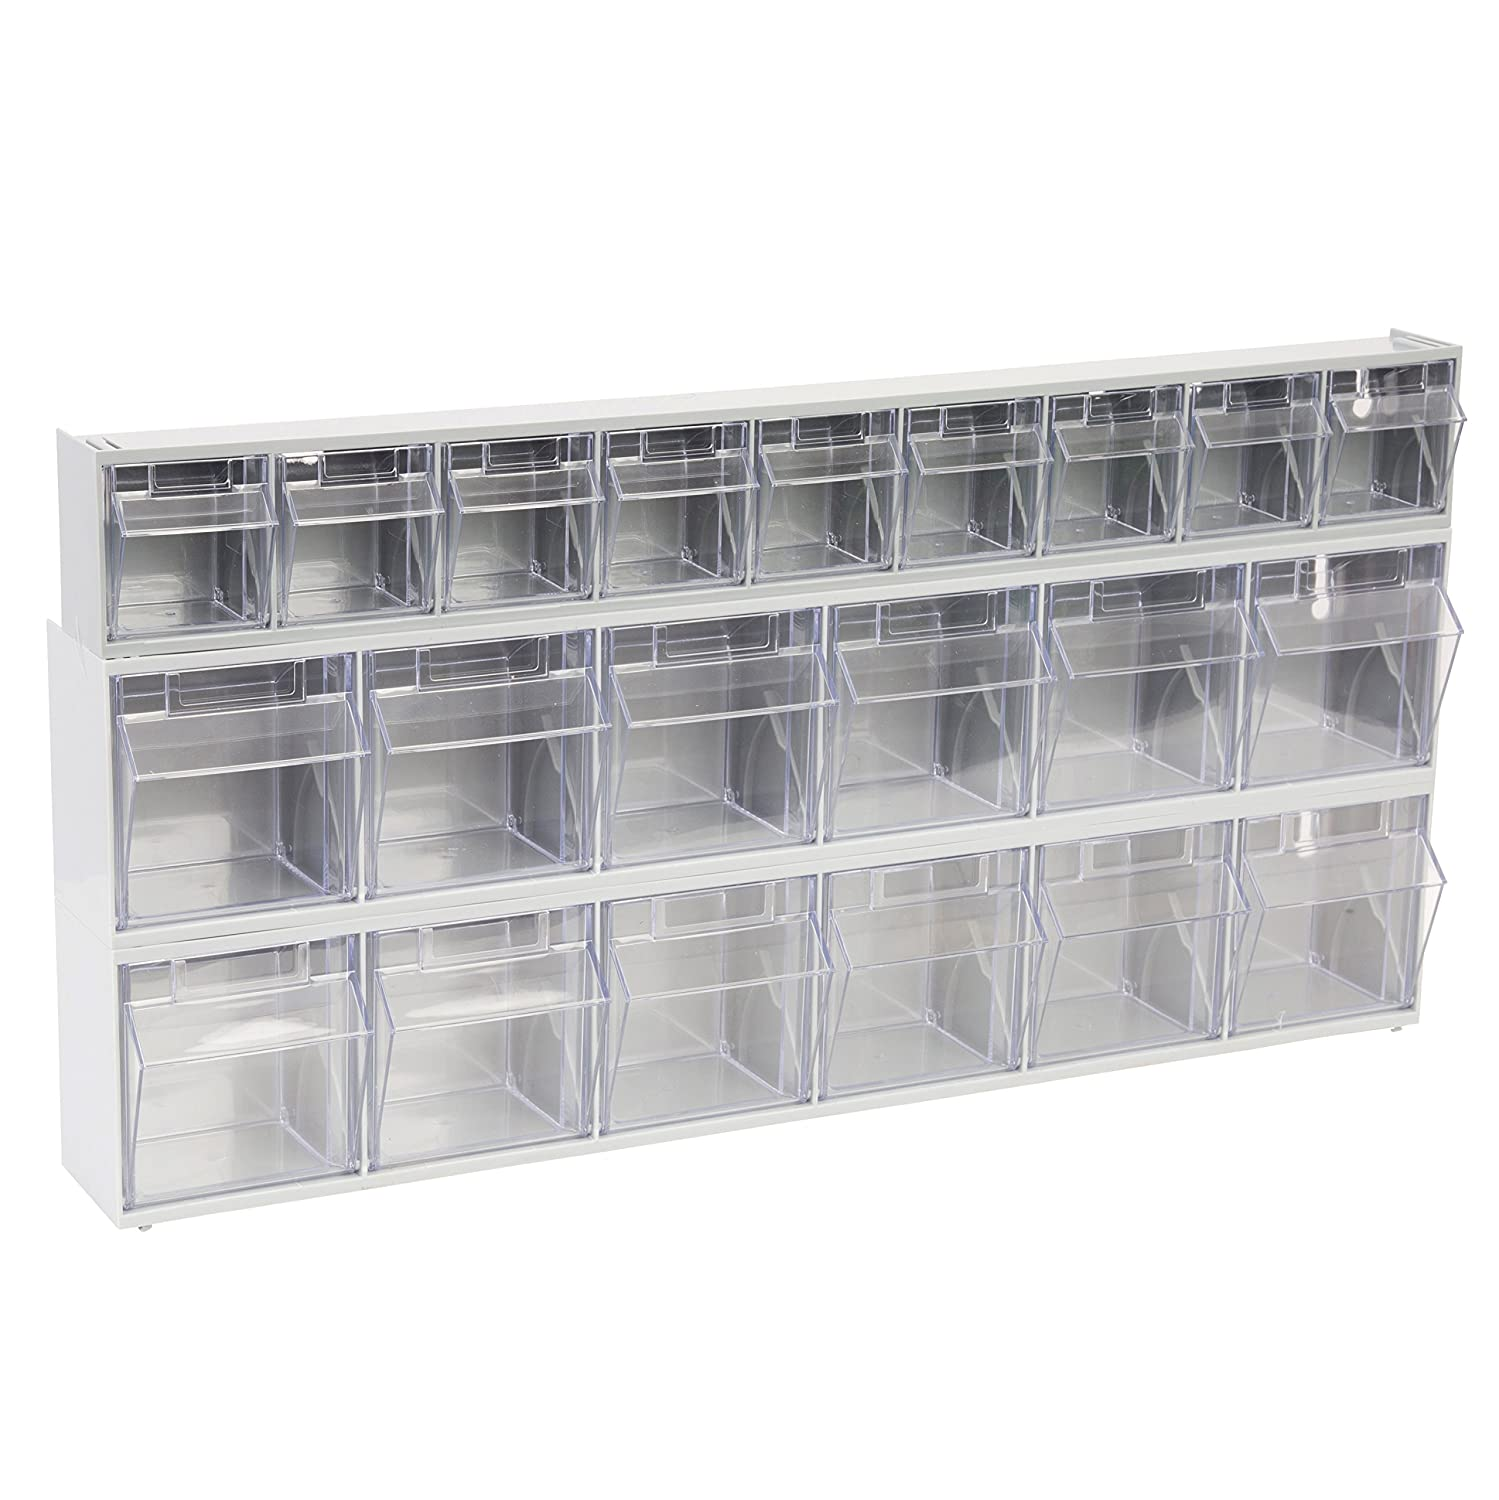 OEMTOOLS 21 Bin Small Parts and Tool Storage Set Removable